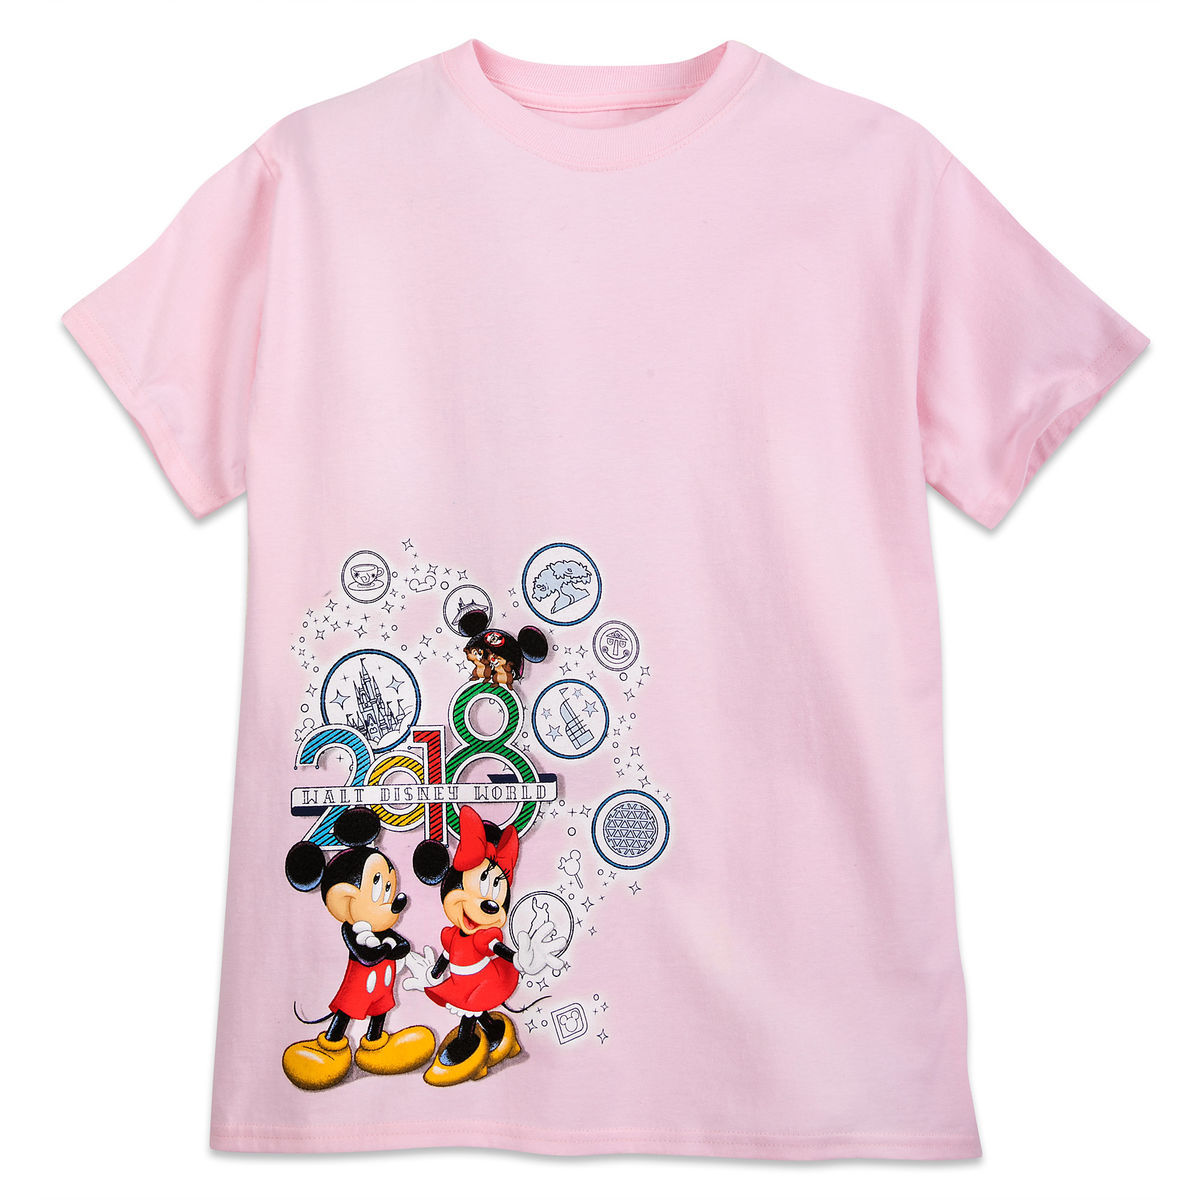 Mickey Mouse And Friends T Shirt For Kids Walt Disney World 2018